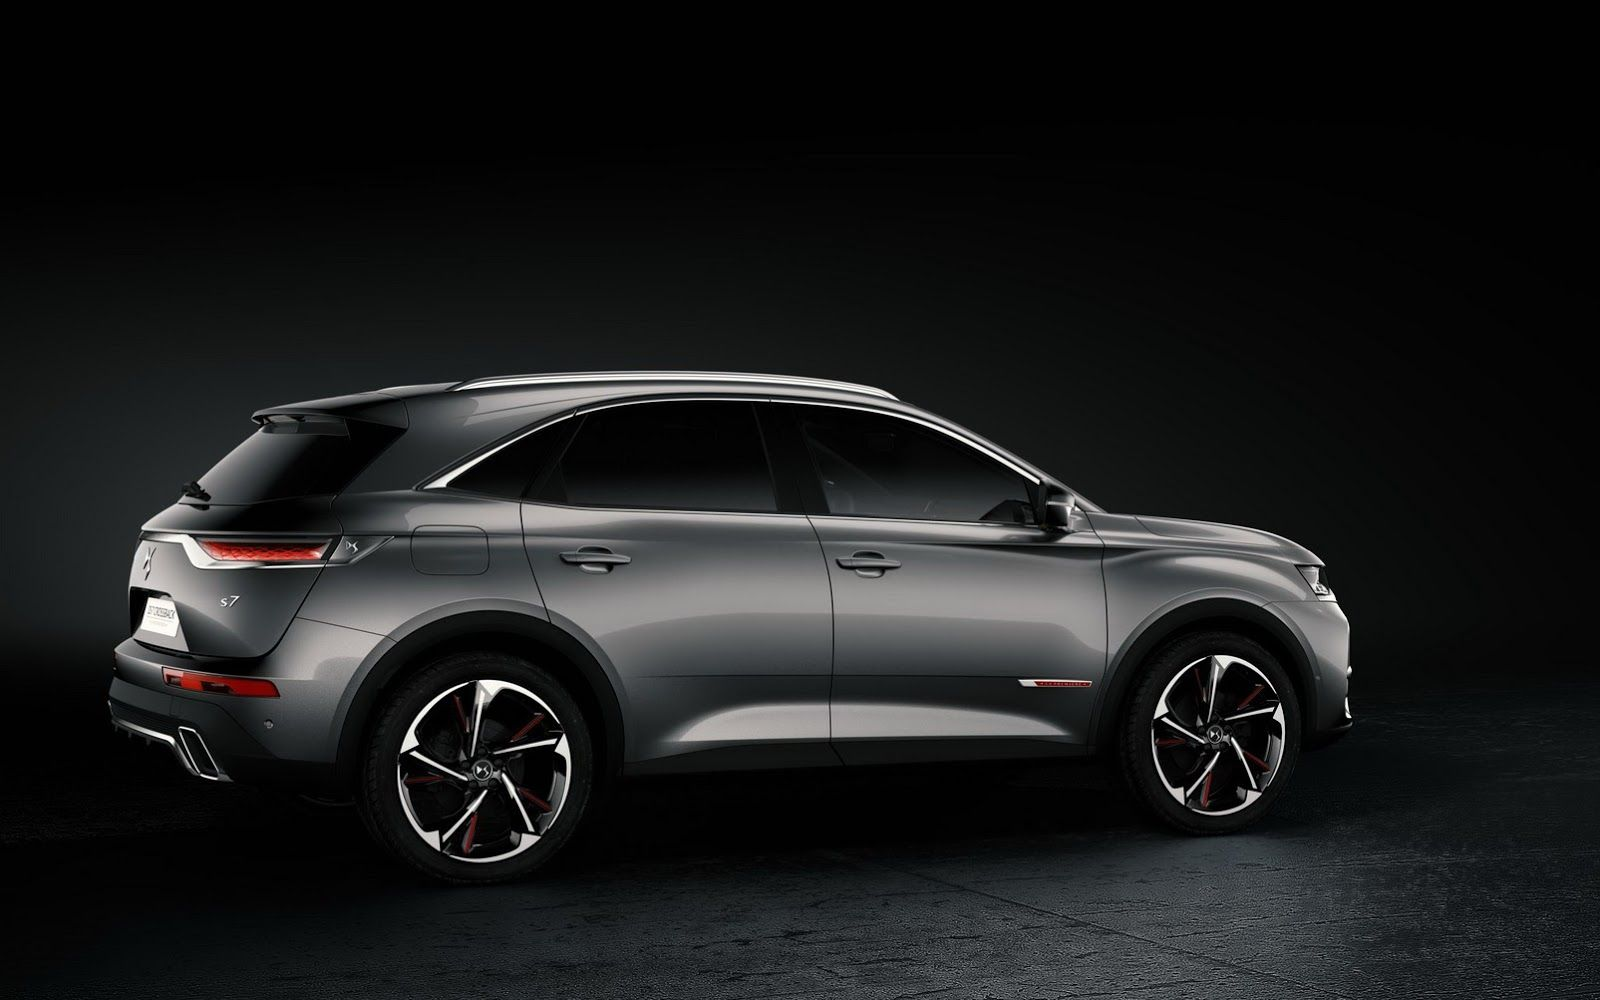 New Ds 7 Crossback Suv Launched Ahead Of Geneva Premiere Carscoops Ds Automobiles Sedan Cars Geneva Motor Show